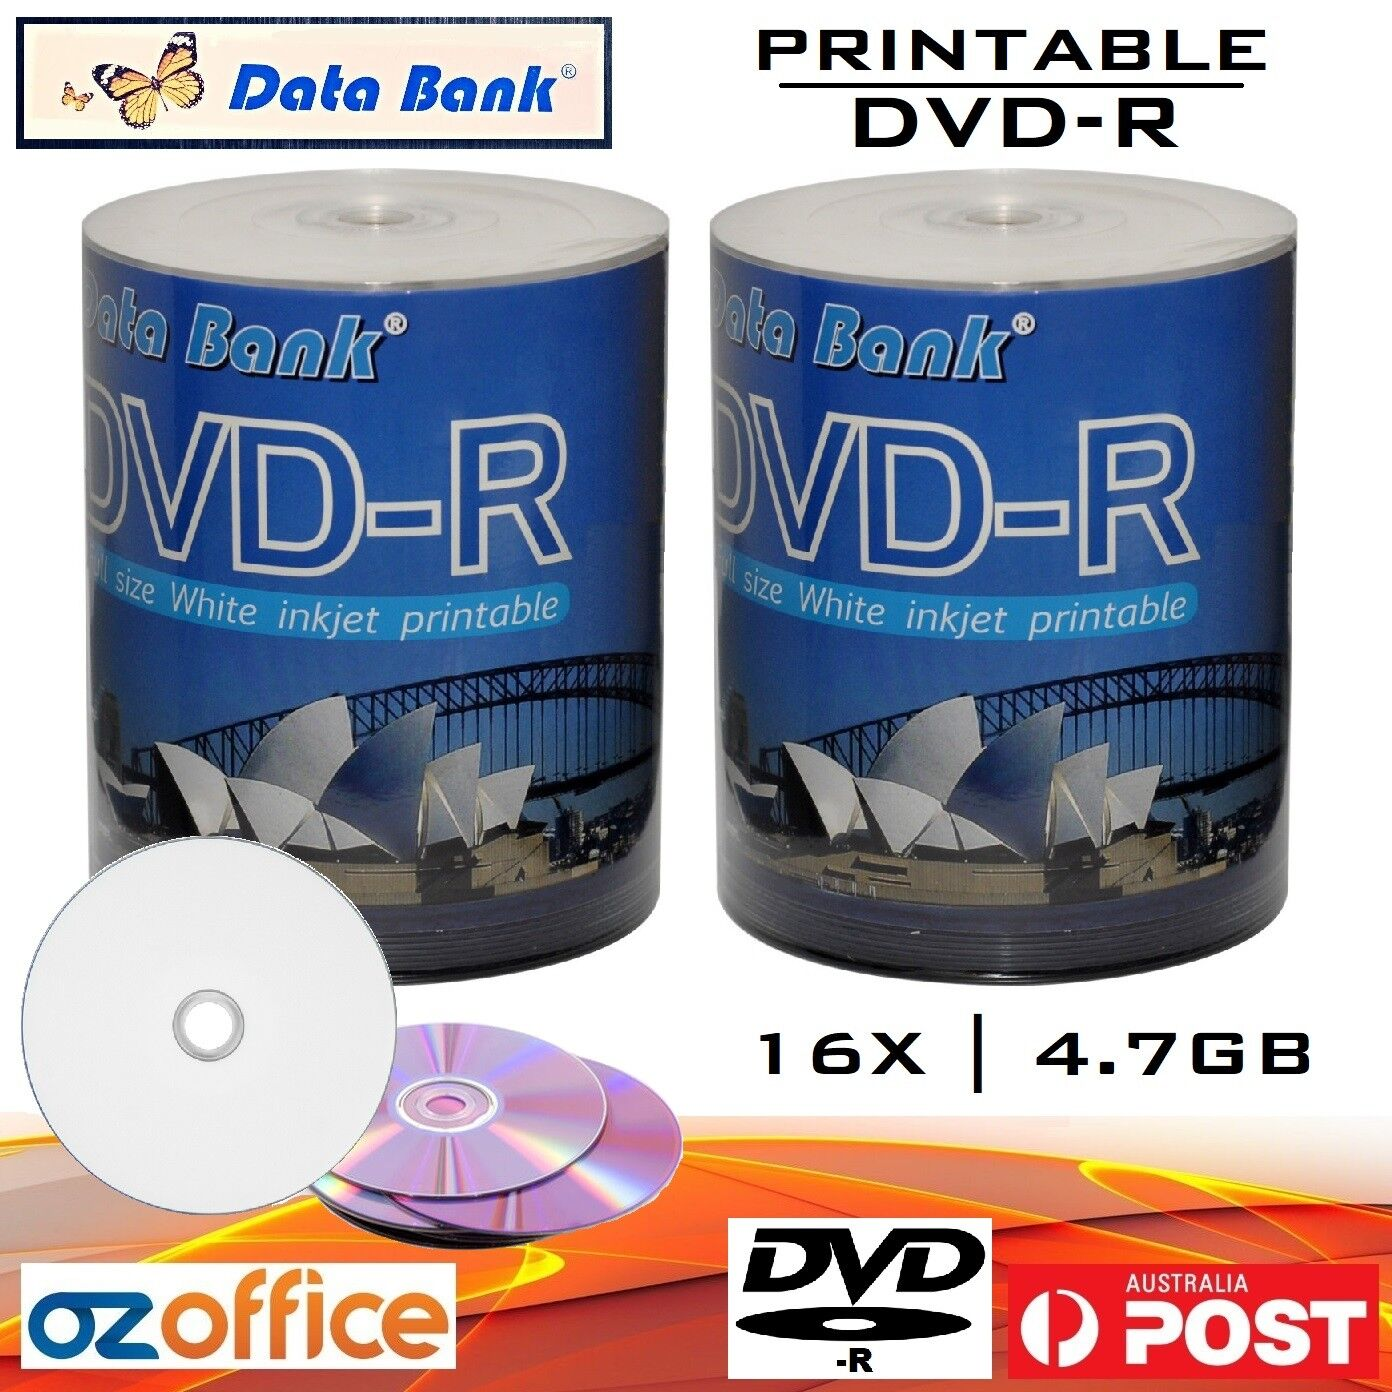 photograph regarding Printable Dvd Discs identified as Information above 200 x Information and facts Financial institution DVD-R 16x Inkjet Printable Blank DVD Discs - Print toward Heart DVD